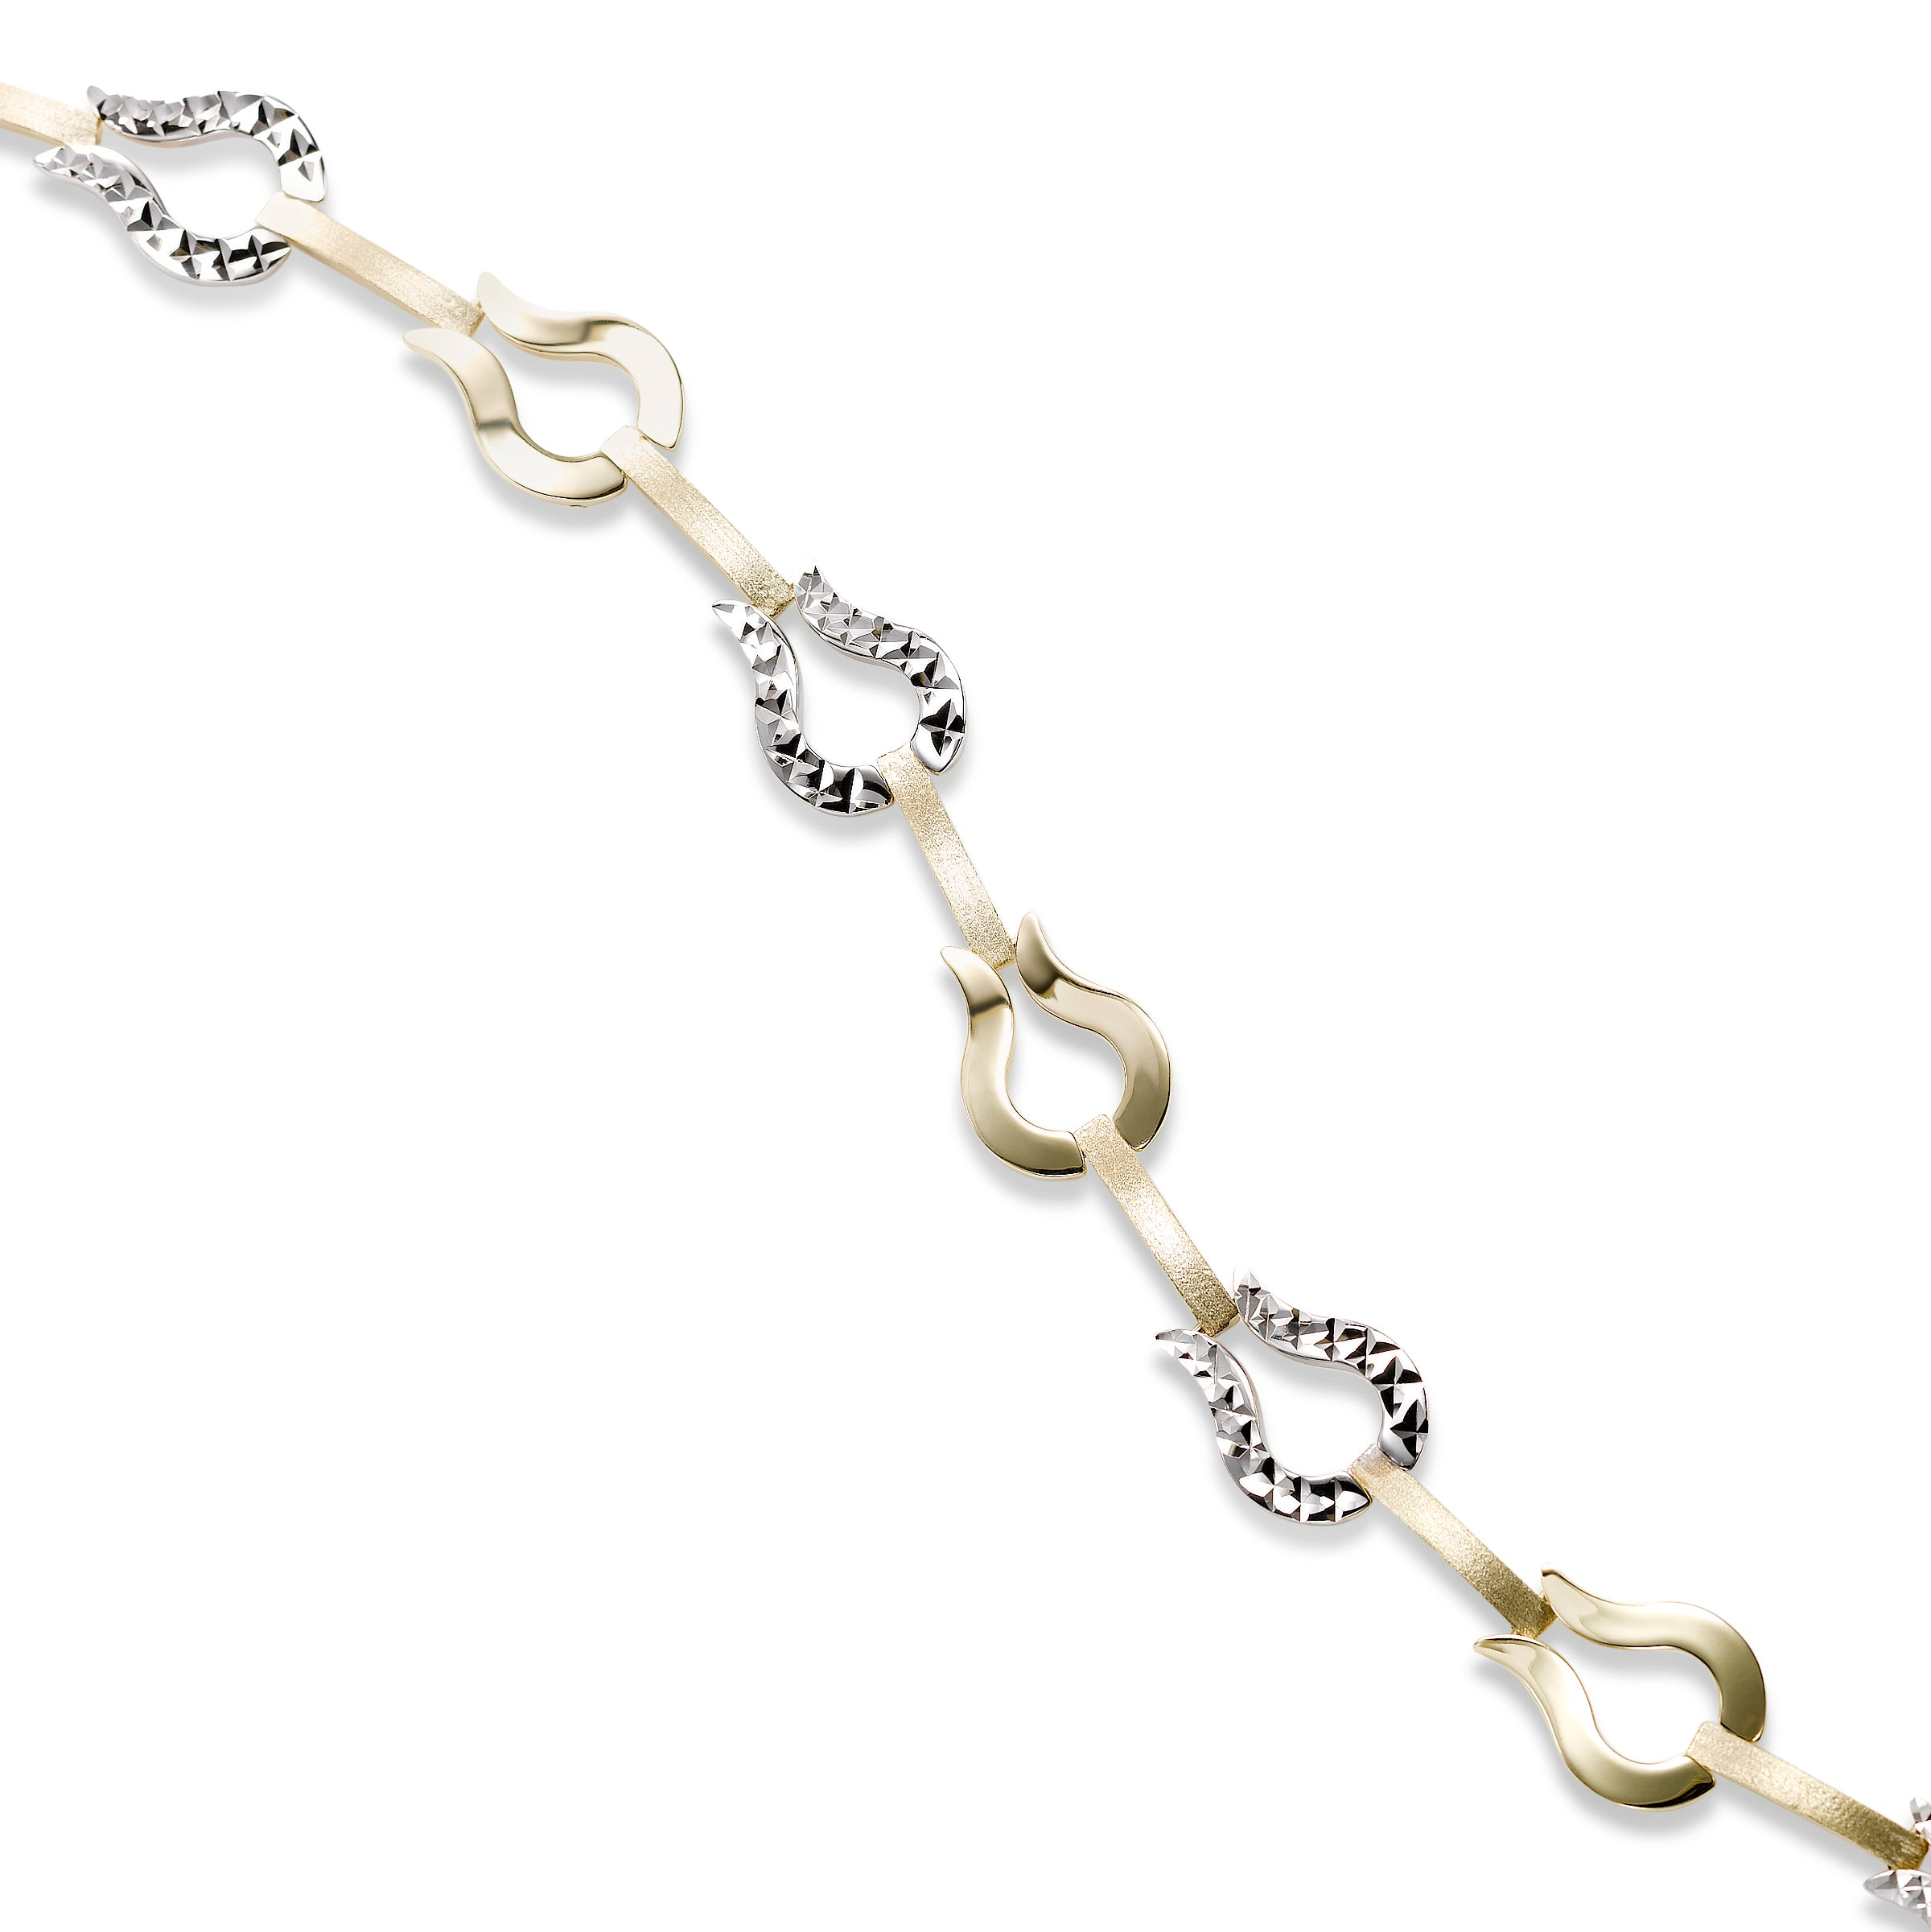 Two Tone Fancy Link Bracelet, 14 Karat Gold